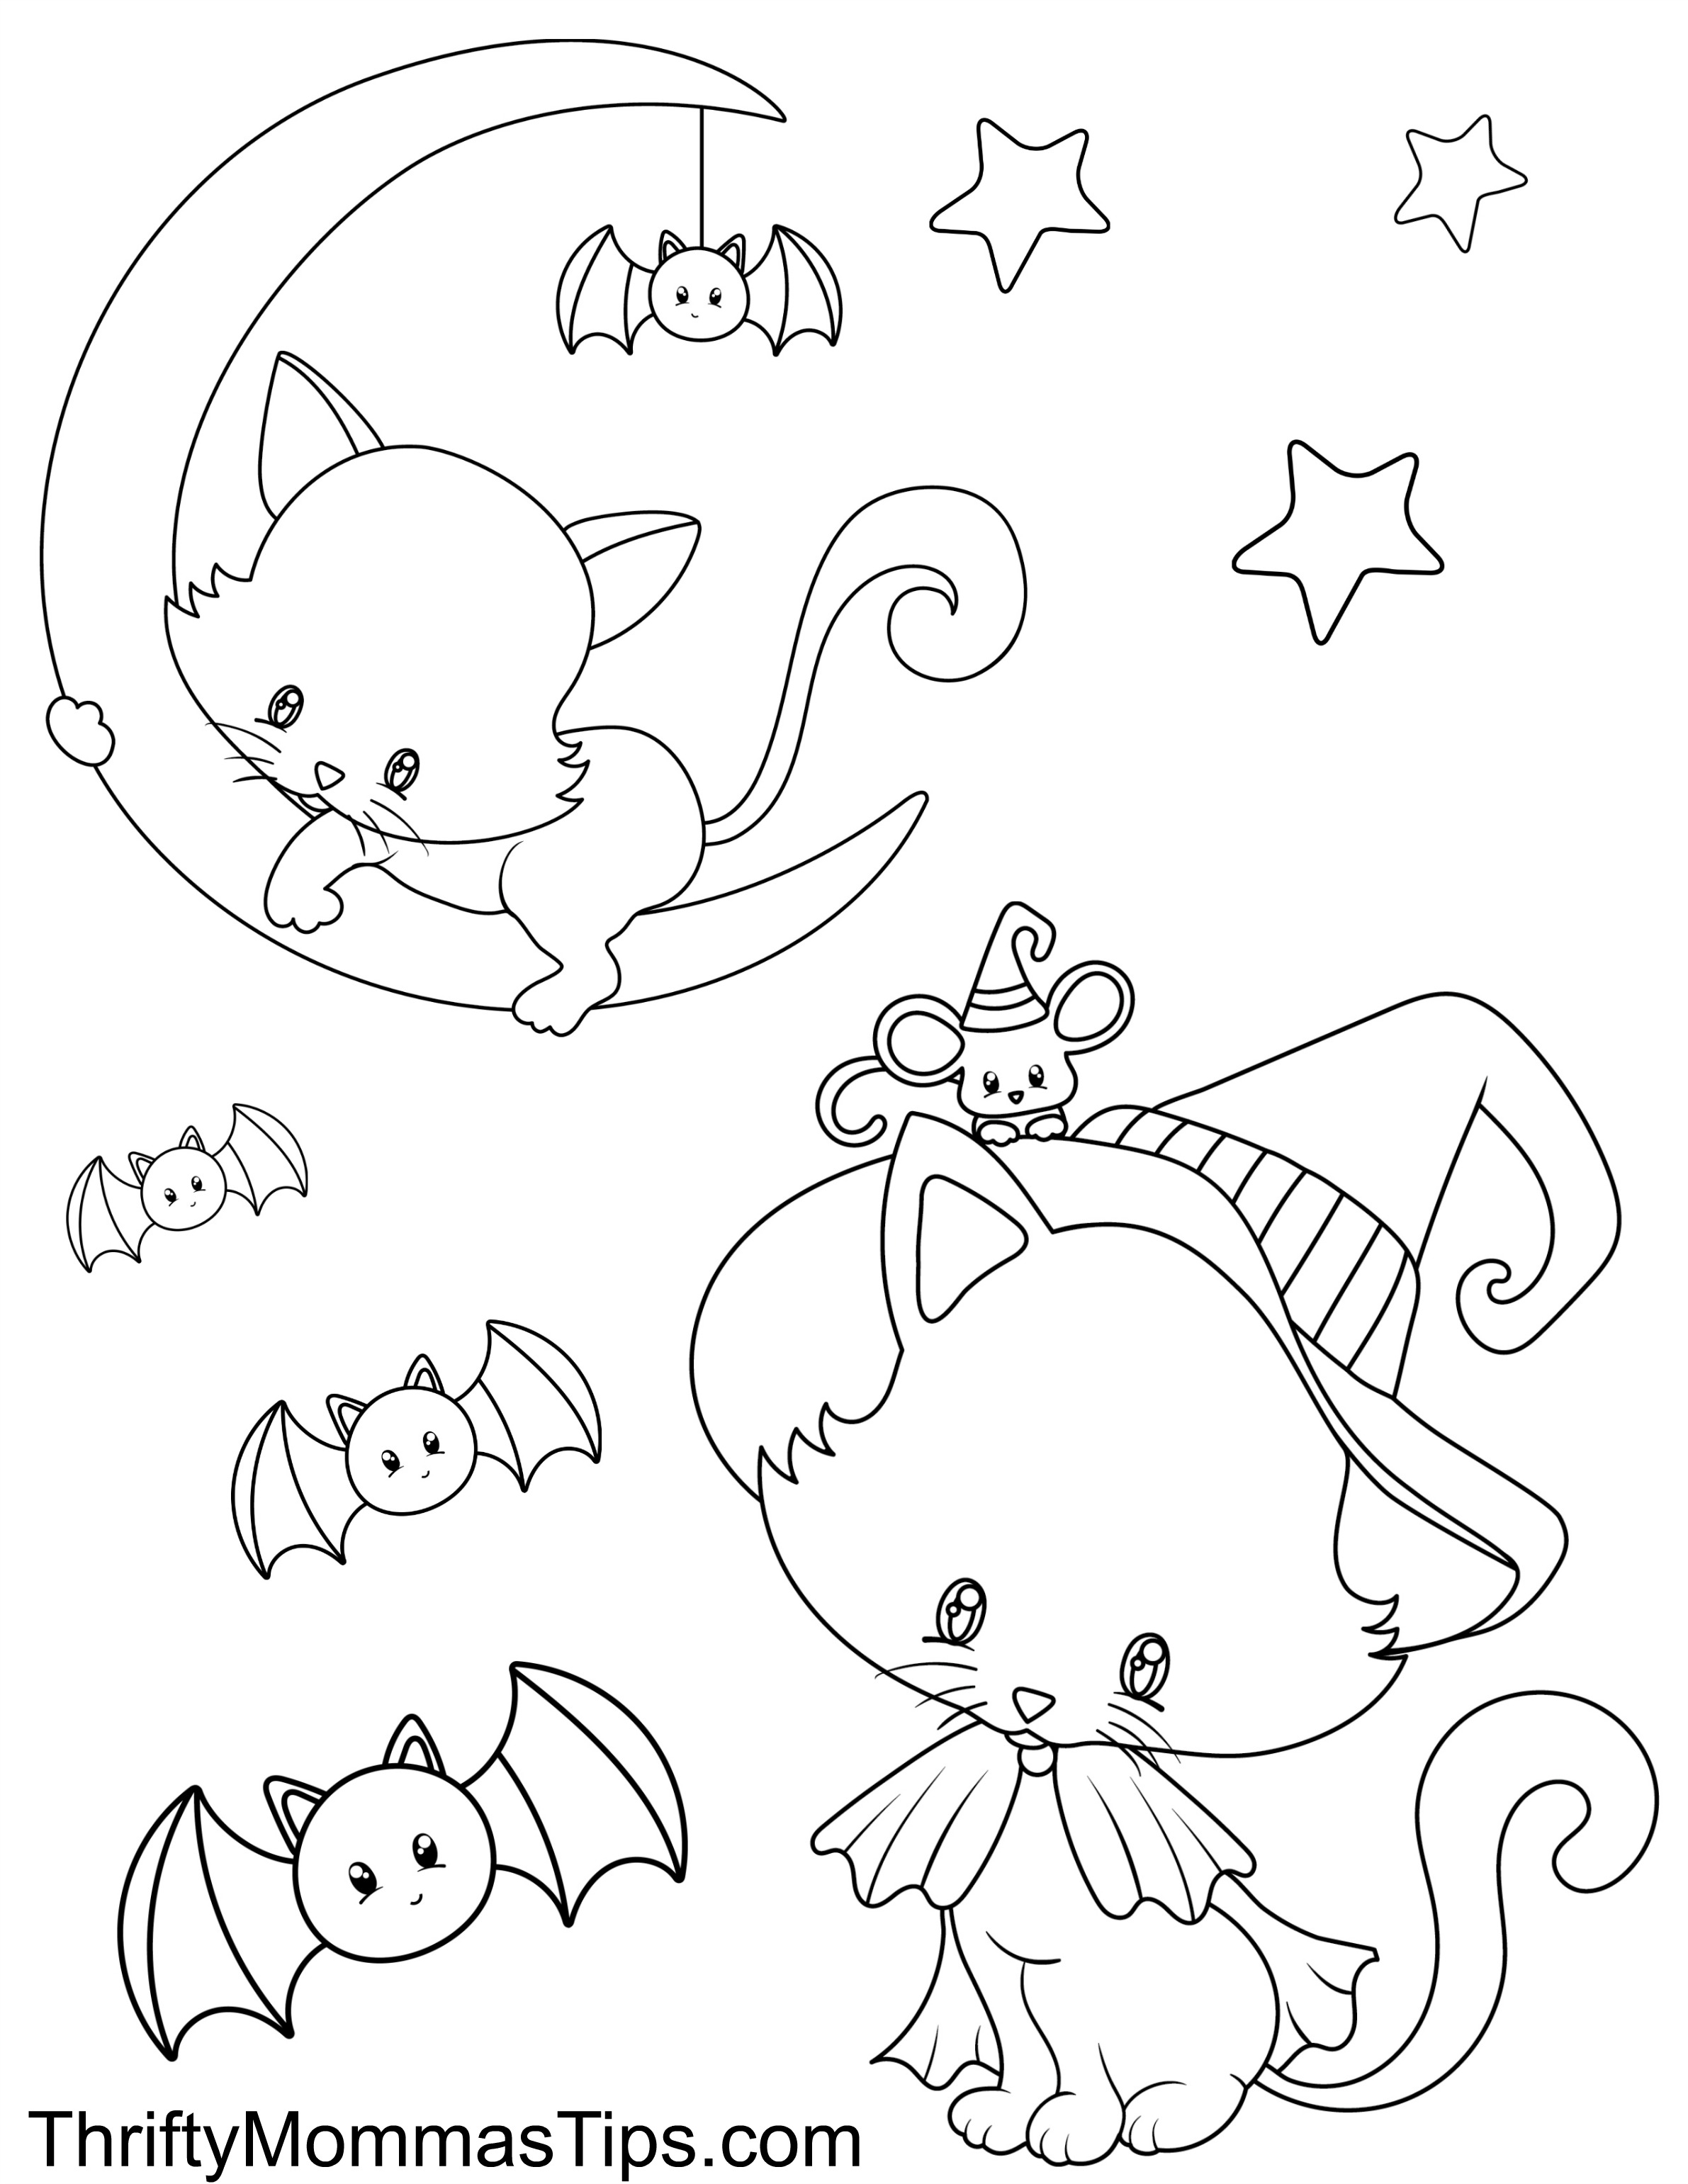 halloween cat coloring page halloween black cat coloring page woo jr kids activities coloring halloween page cat